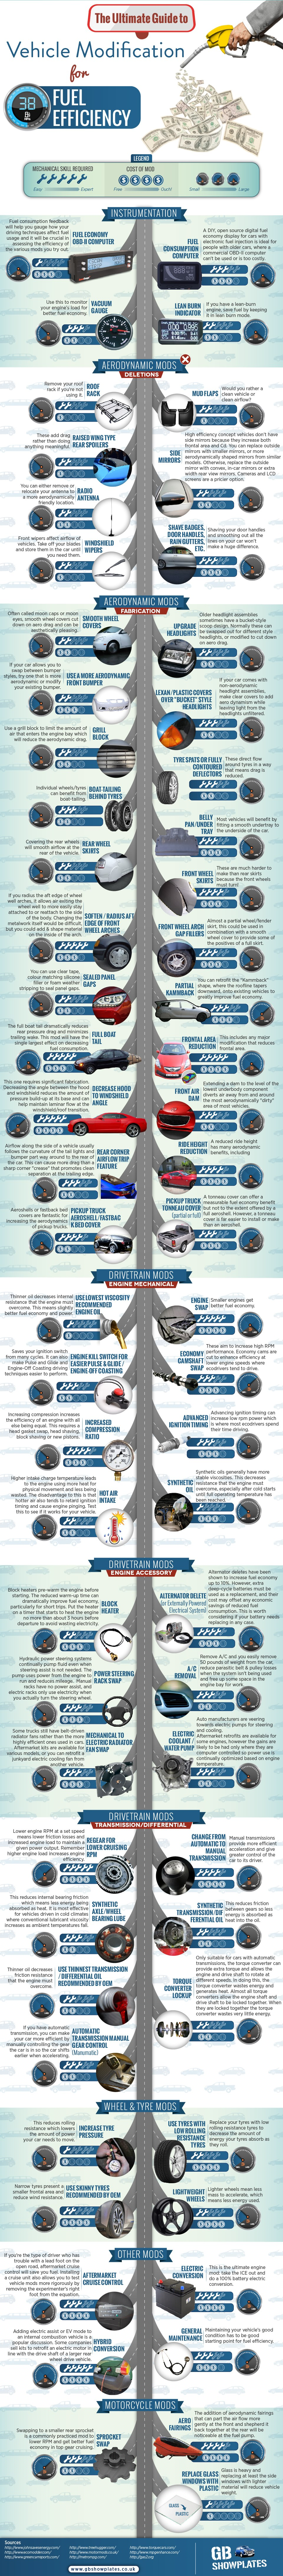 Modification of Vehicles for Improved Fuel Efficiency Infographic